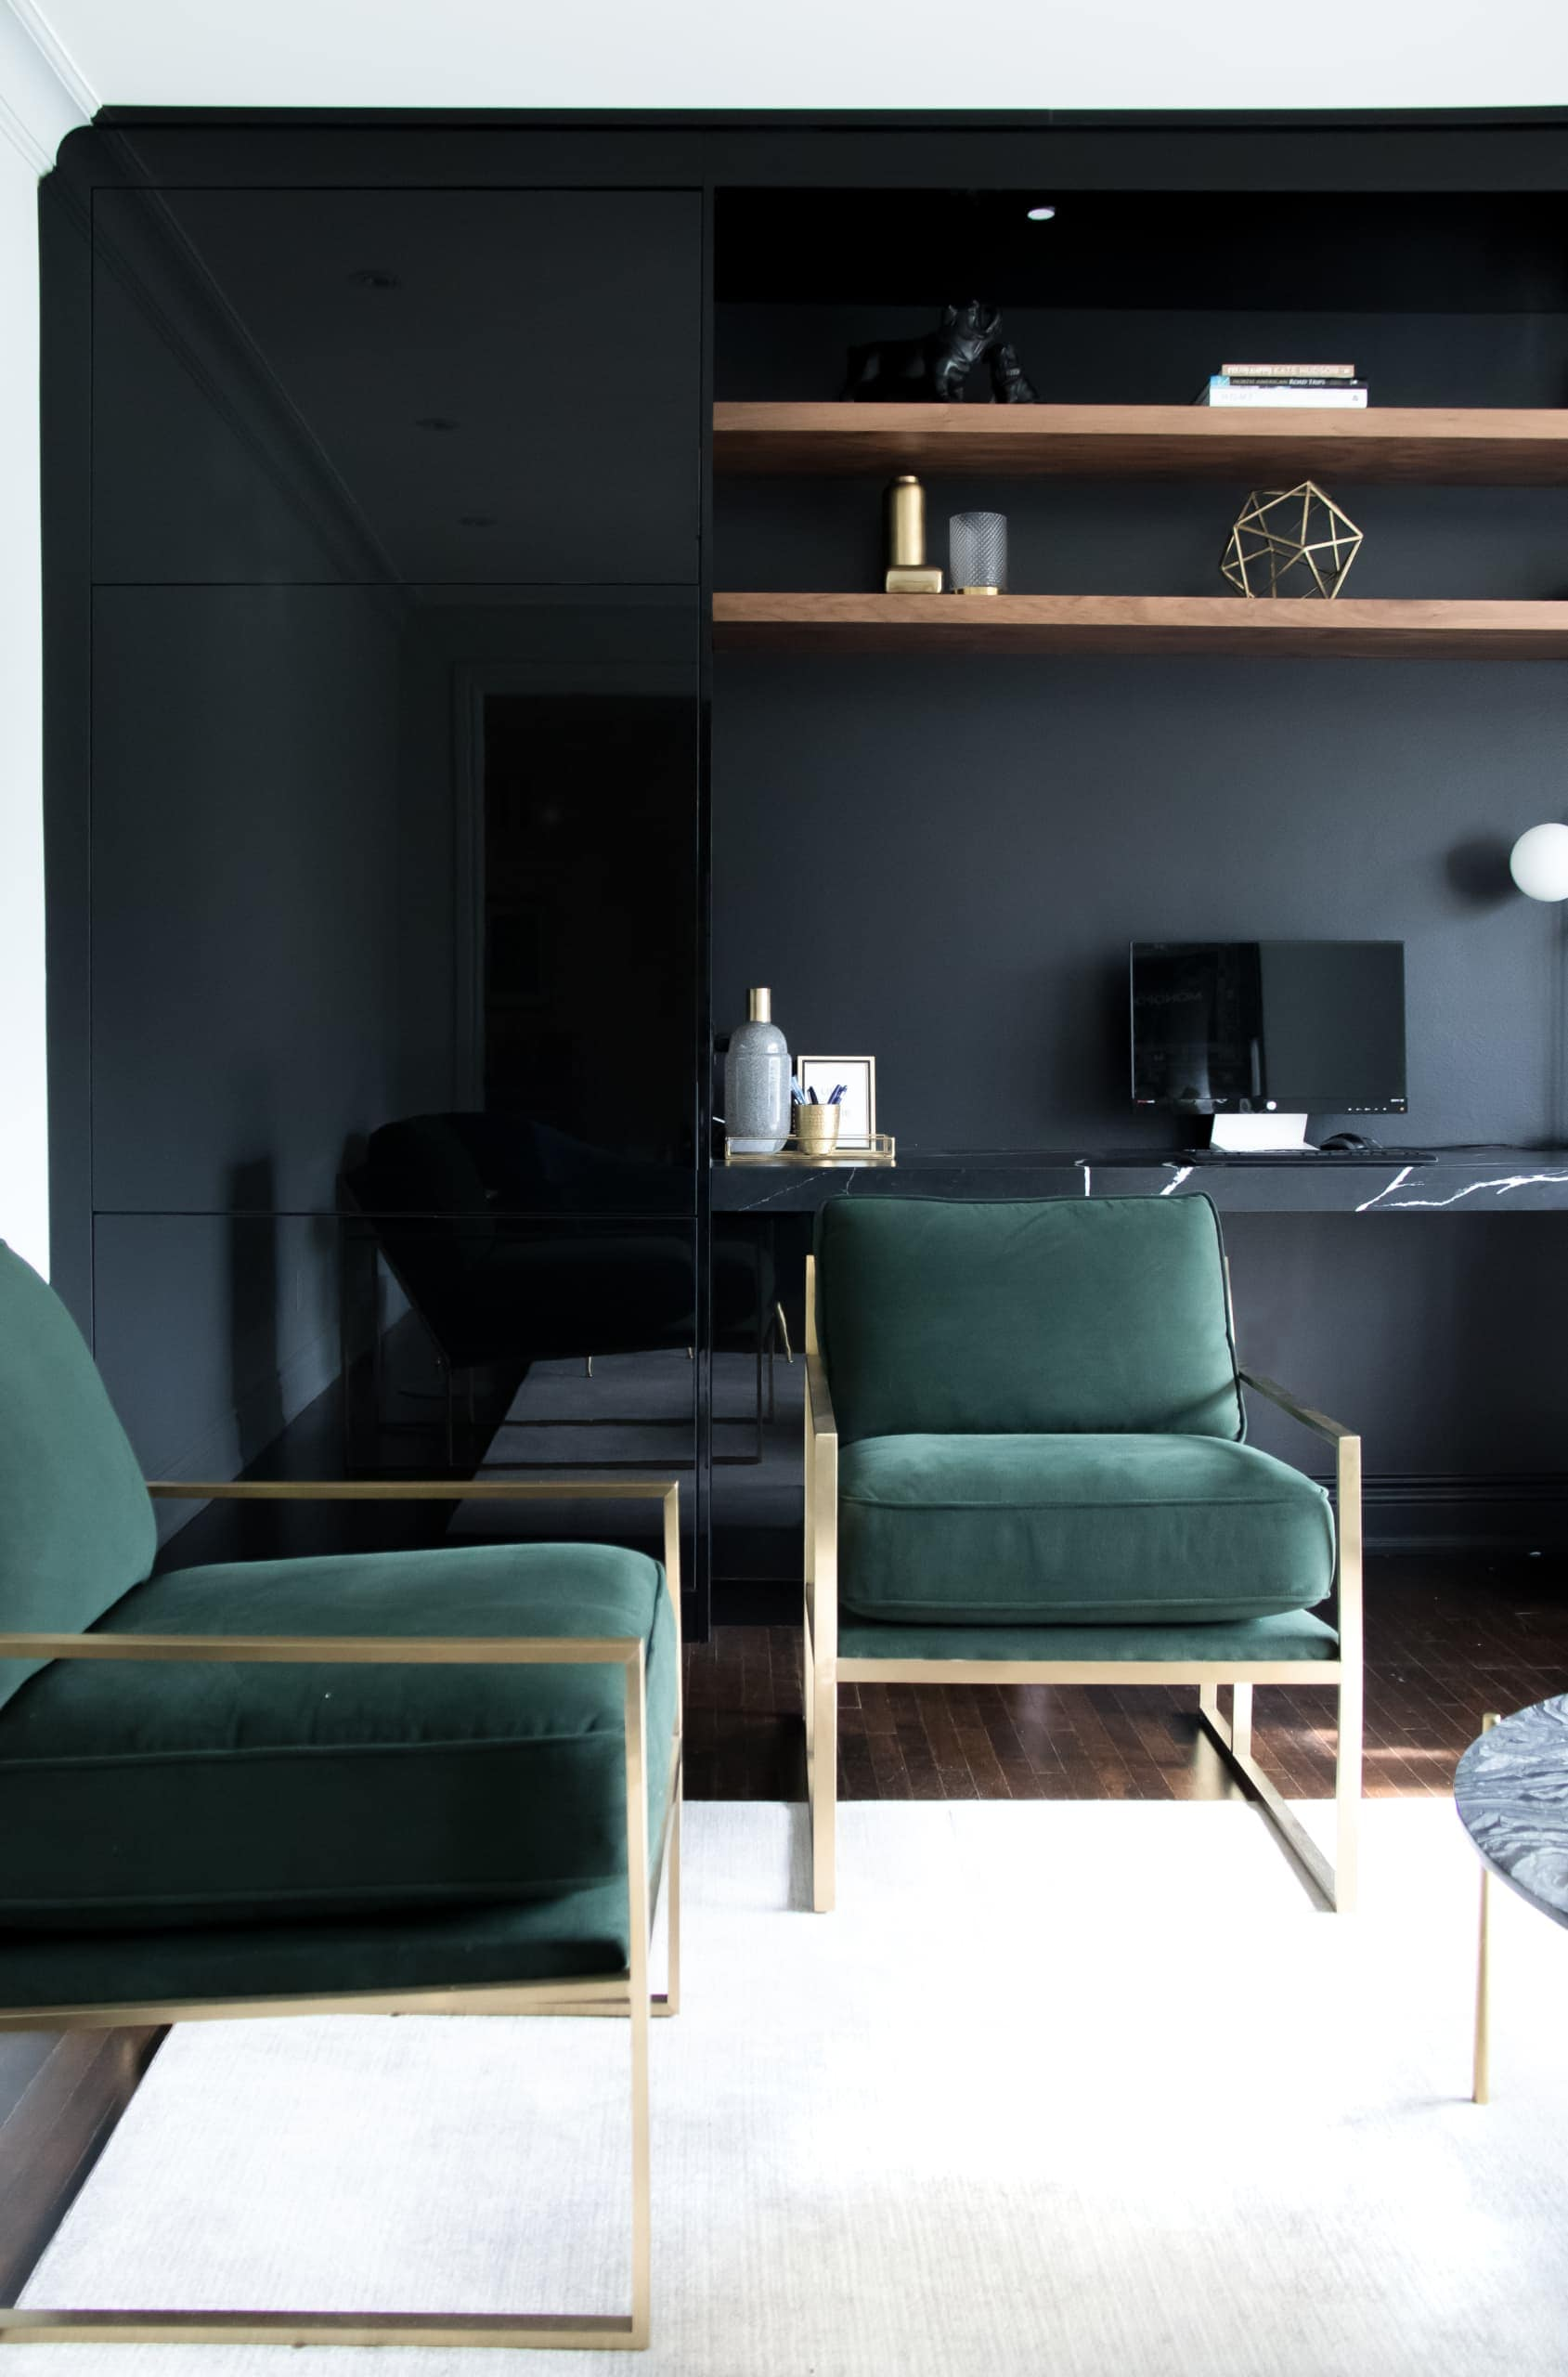 Green chairs next to a dark wall